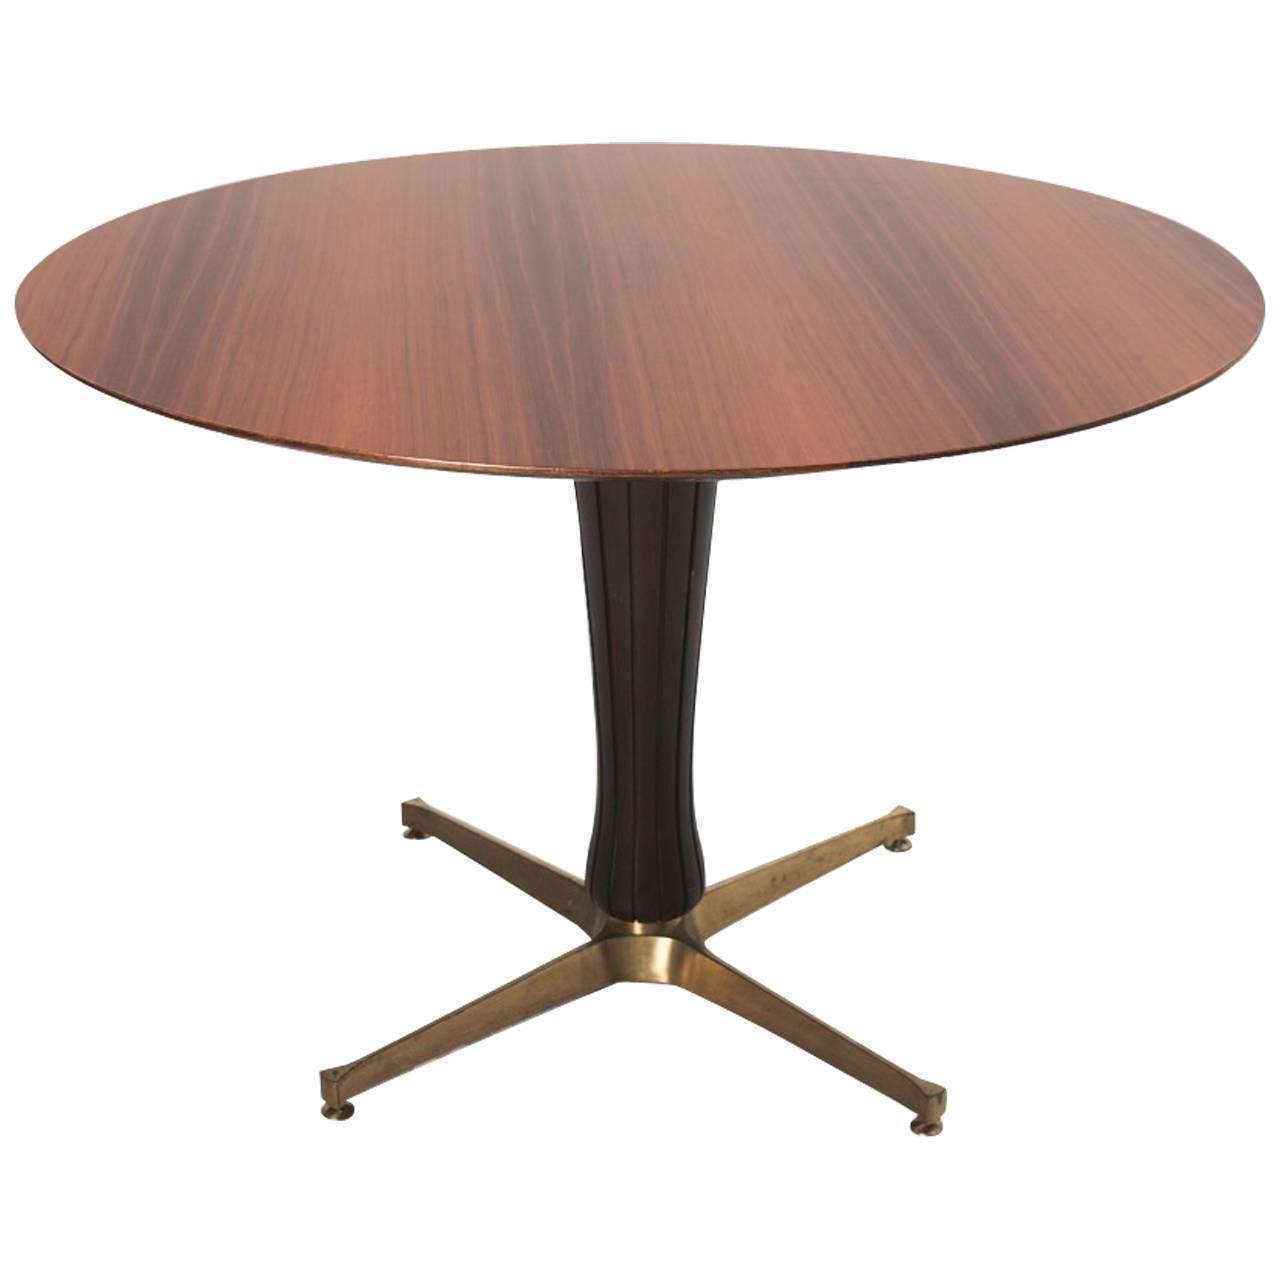 Italian Design Dining Tables : Modernist Fifties Pedestal Dining Table Italian Design  Modernism